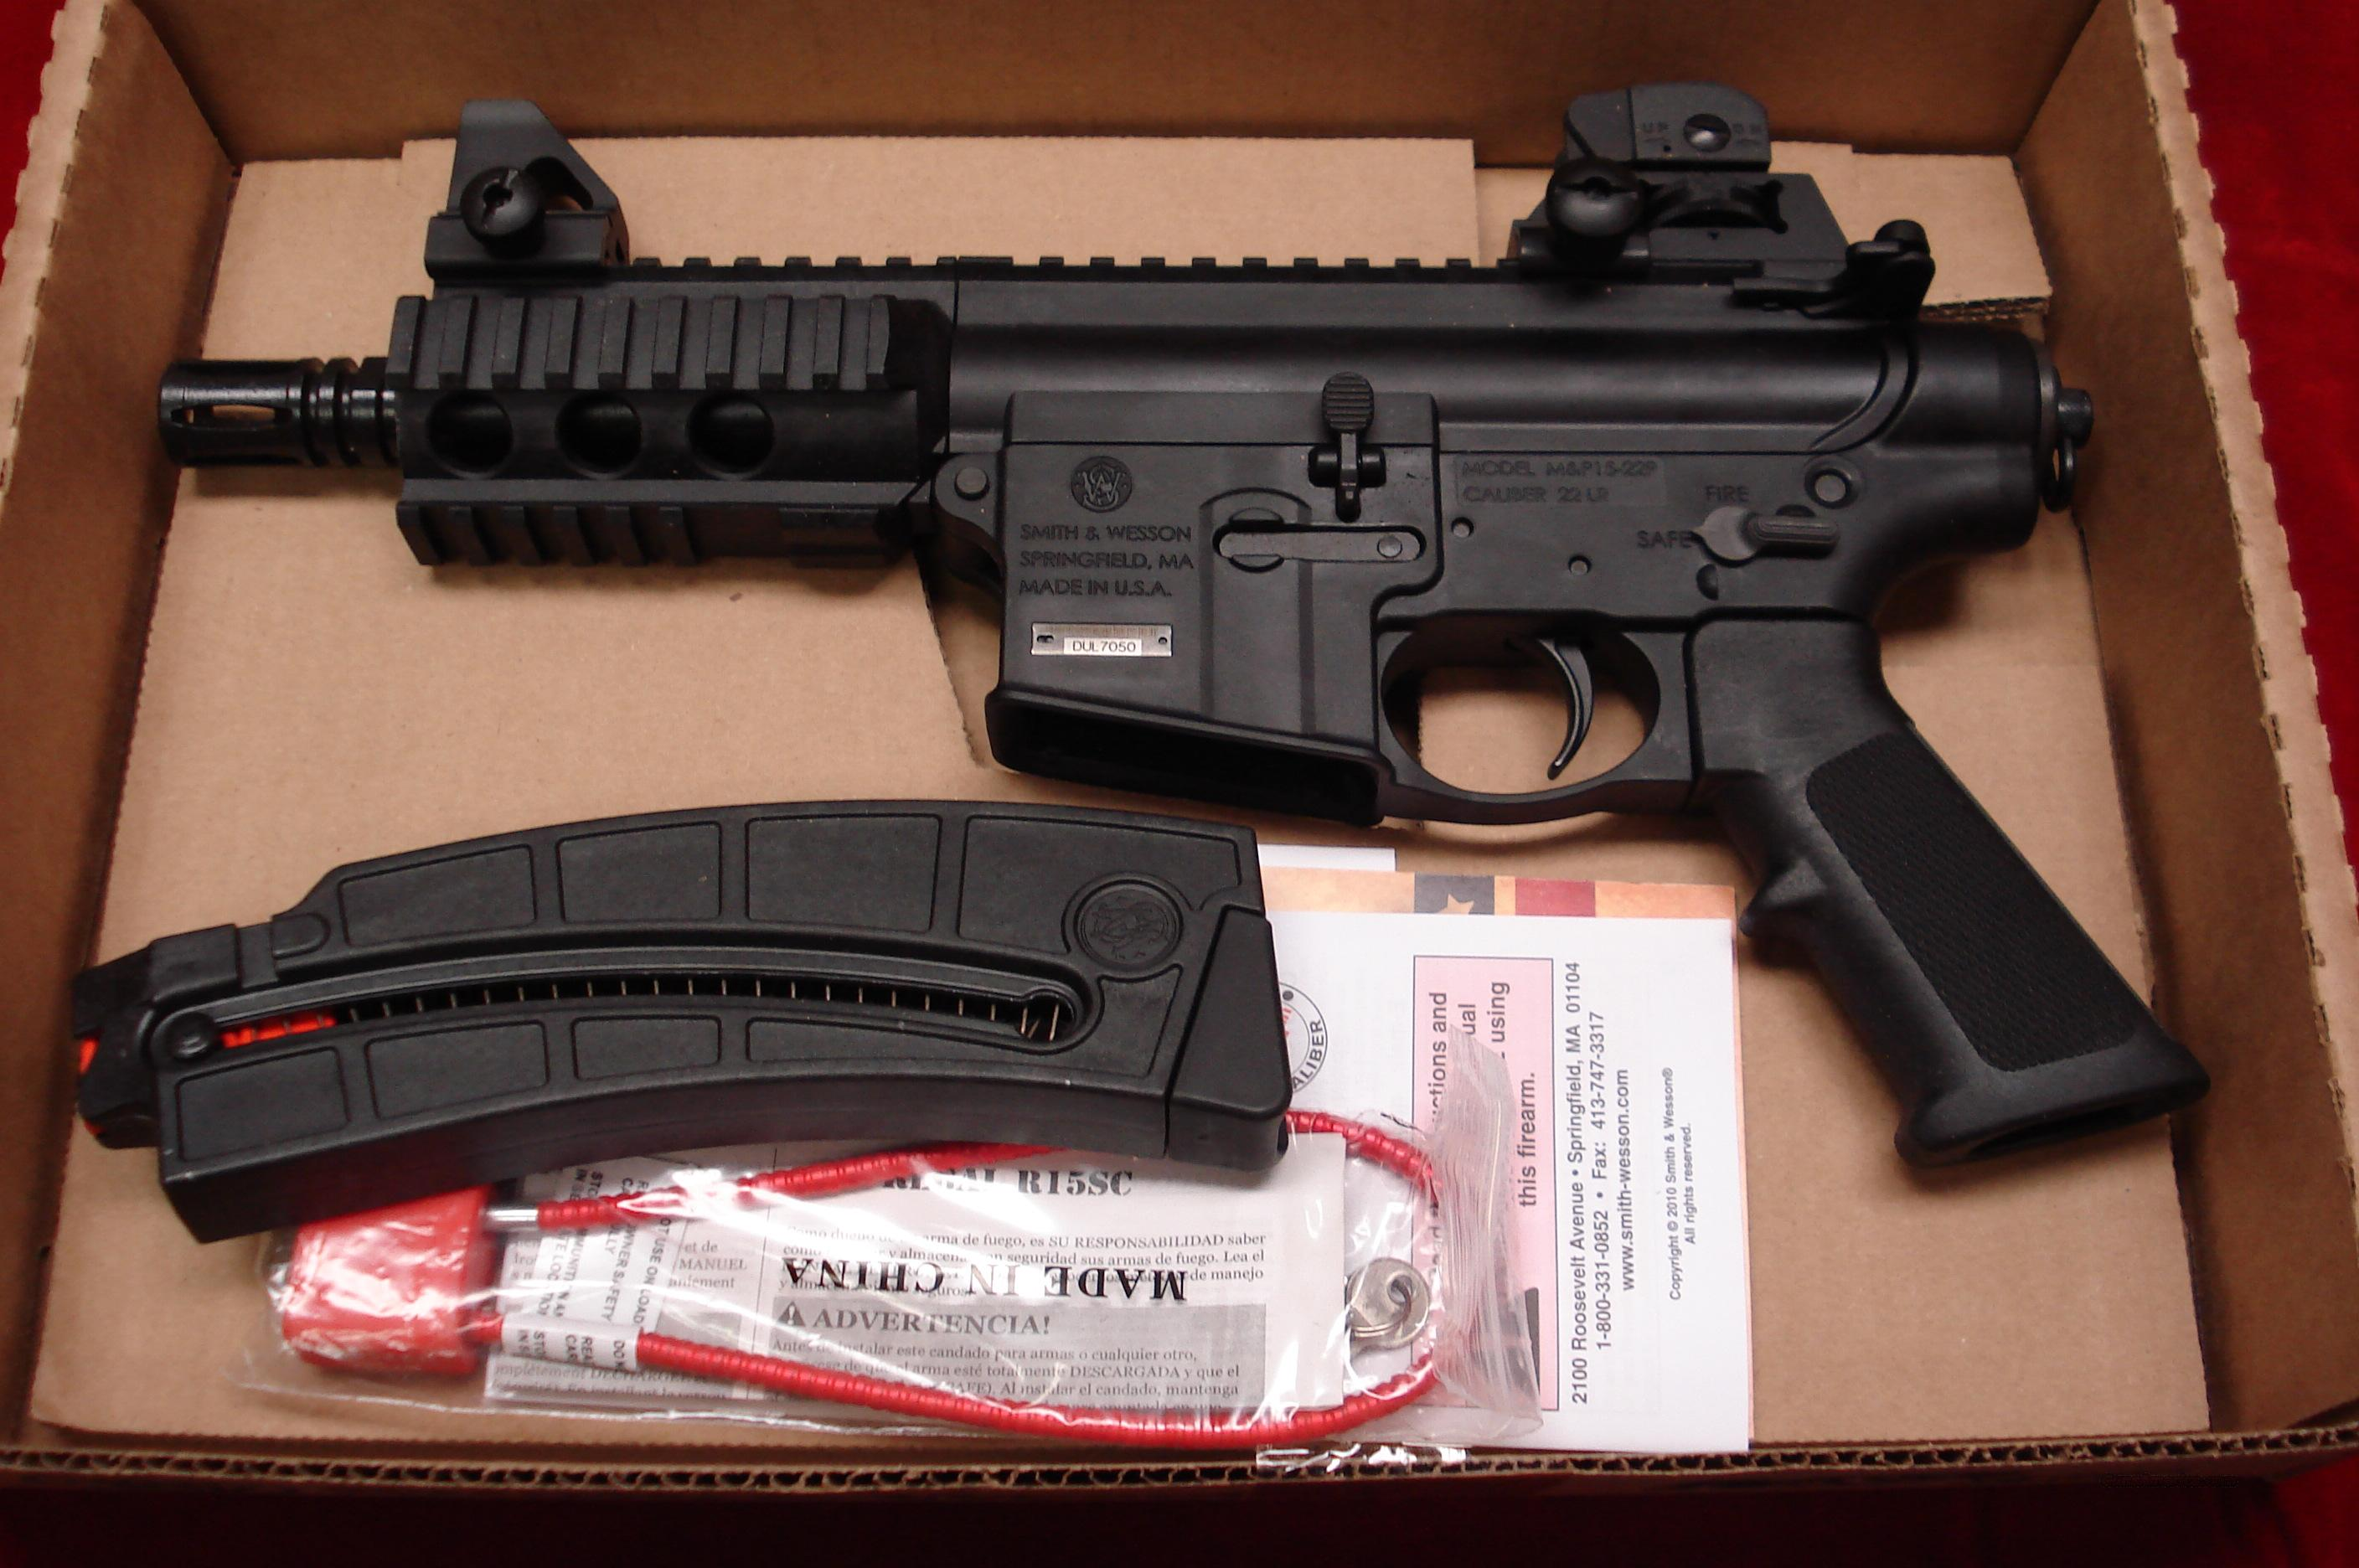 SMITH & WESSON M&P15-22 PISTOL NEW  Guns > Pistols > Smith & Wesson Pistols - Autos > .22 Autos